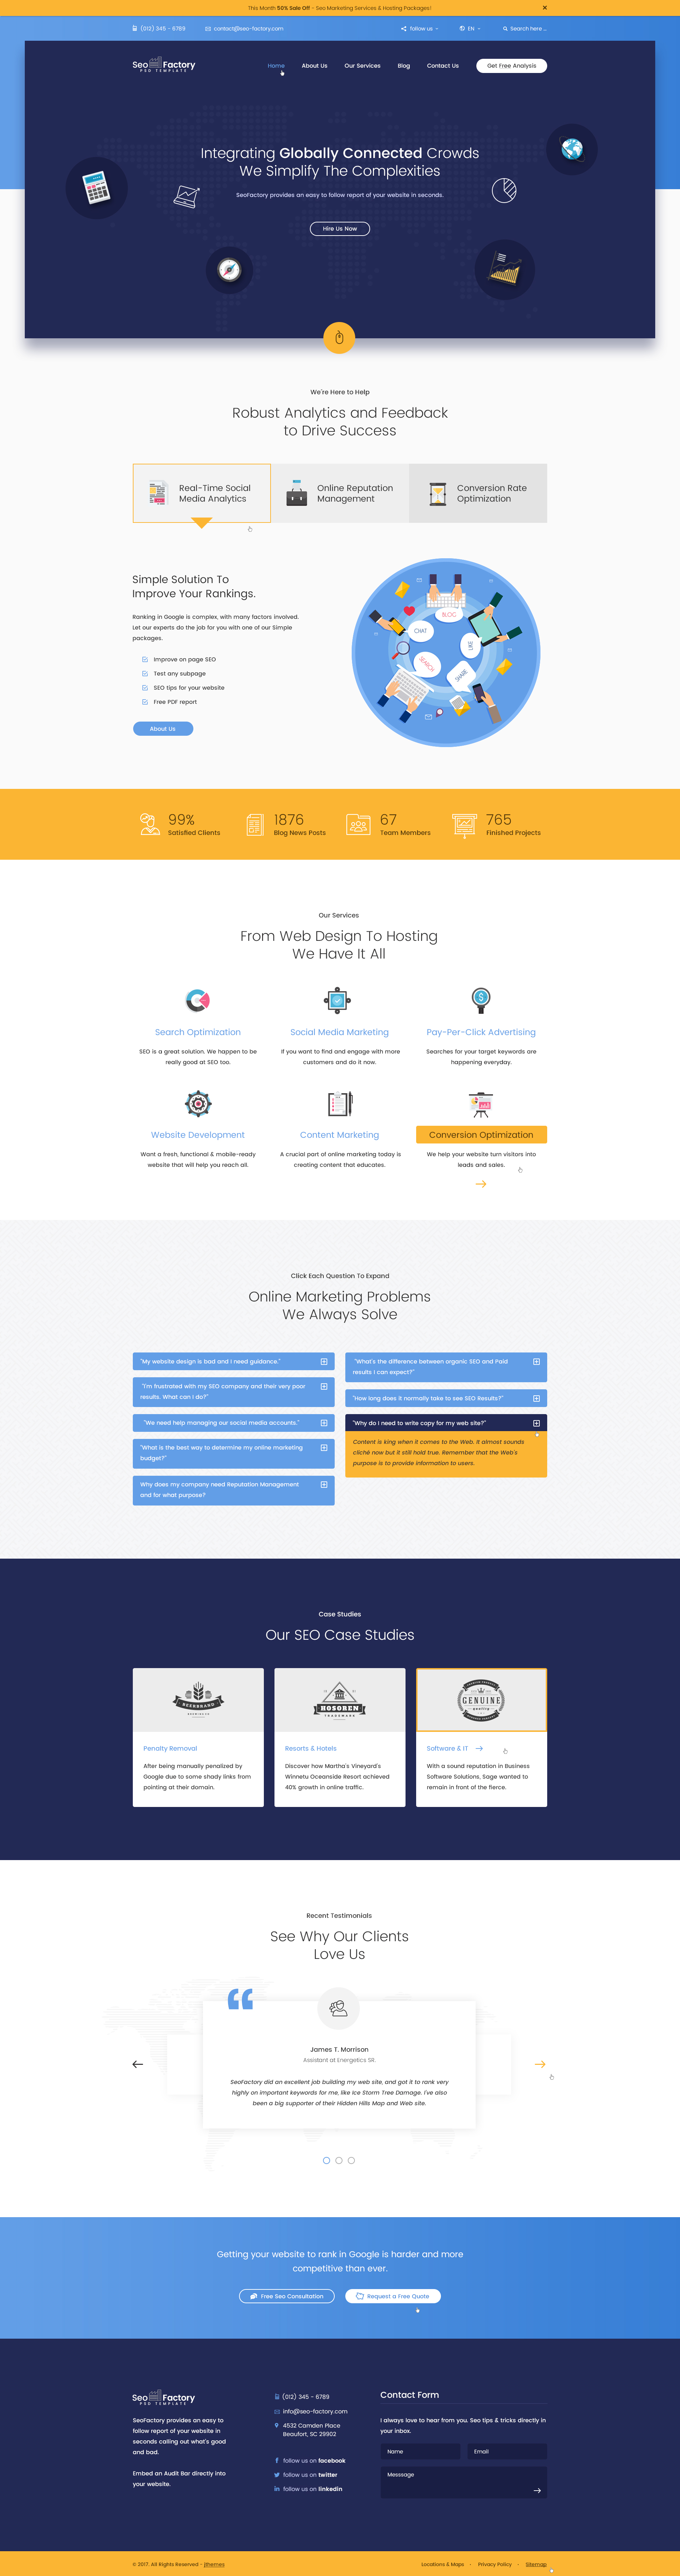 SEO Factory - Digital Marketing Agency HTML Template